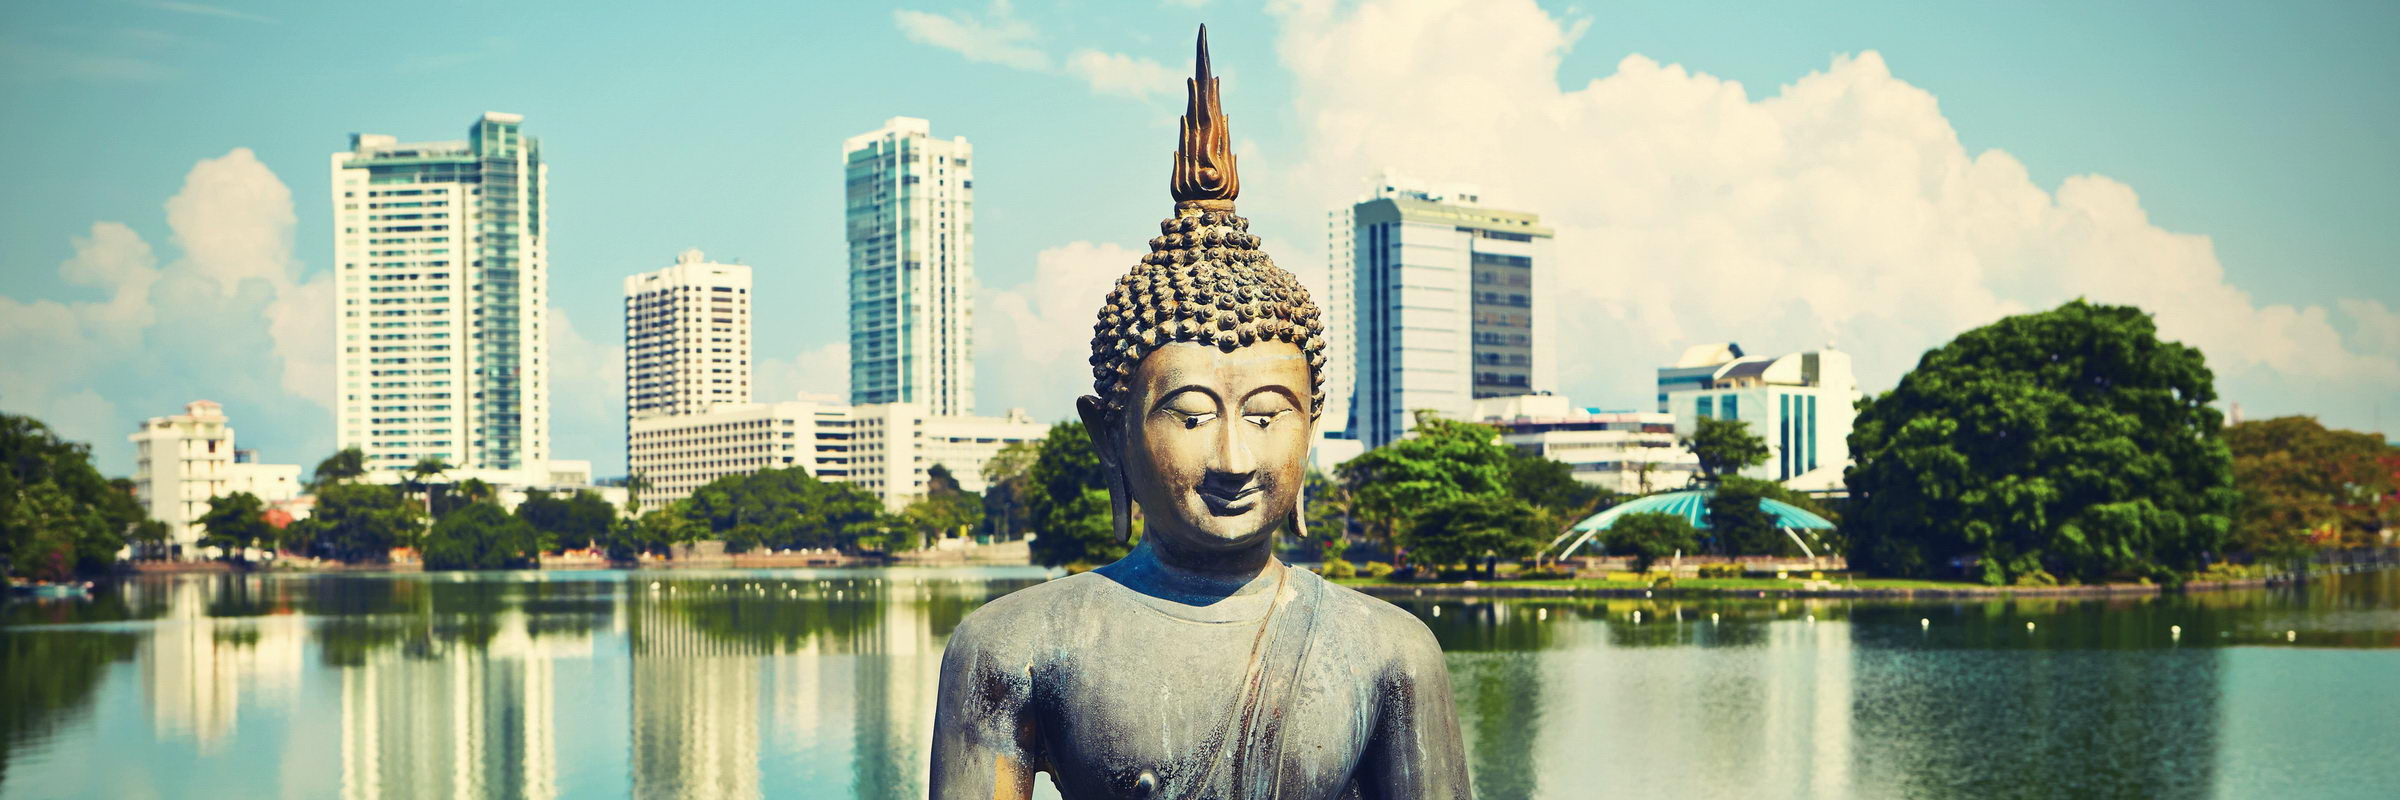 Buddha Statue am Beira Lake in Colombo – Colombo City Tour